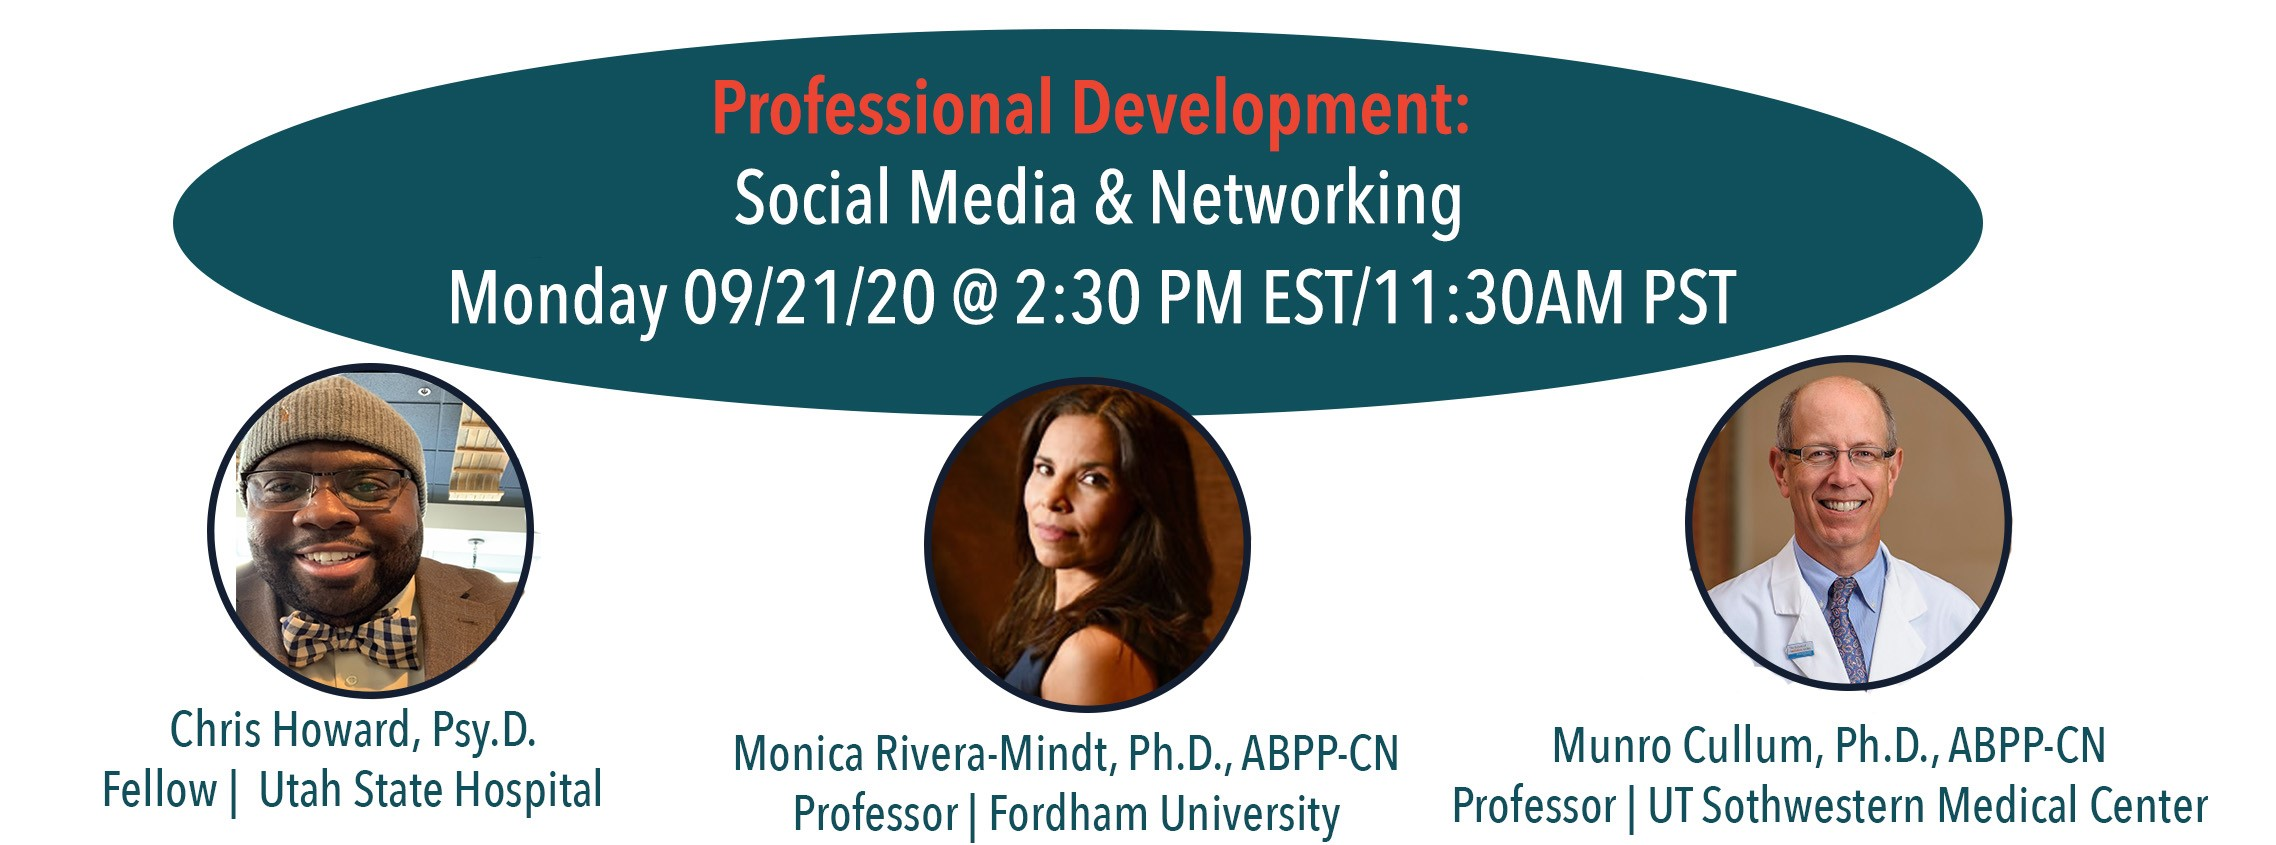 Professional Development: Social Media & Networking from 9/21/20 presented by: Dr. Monica Rivera Mindt, Dr. Chris Howard, Dr. Munro Cullum